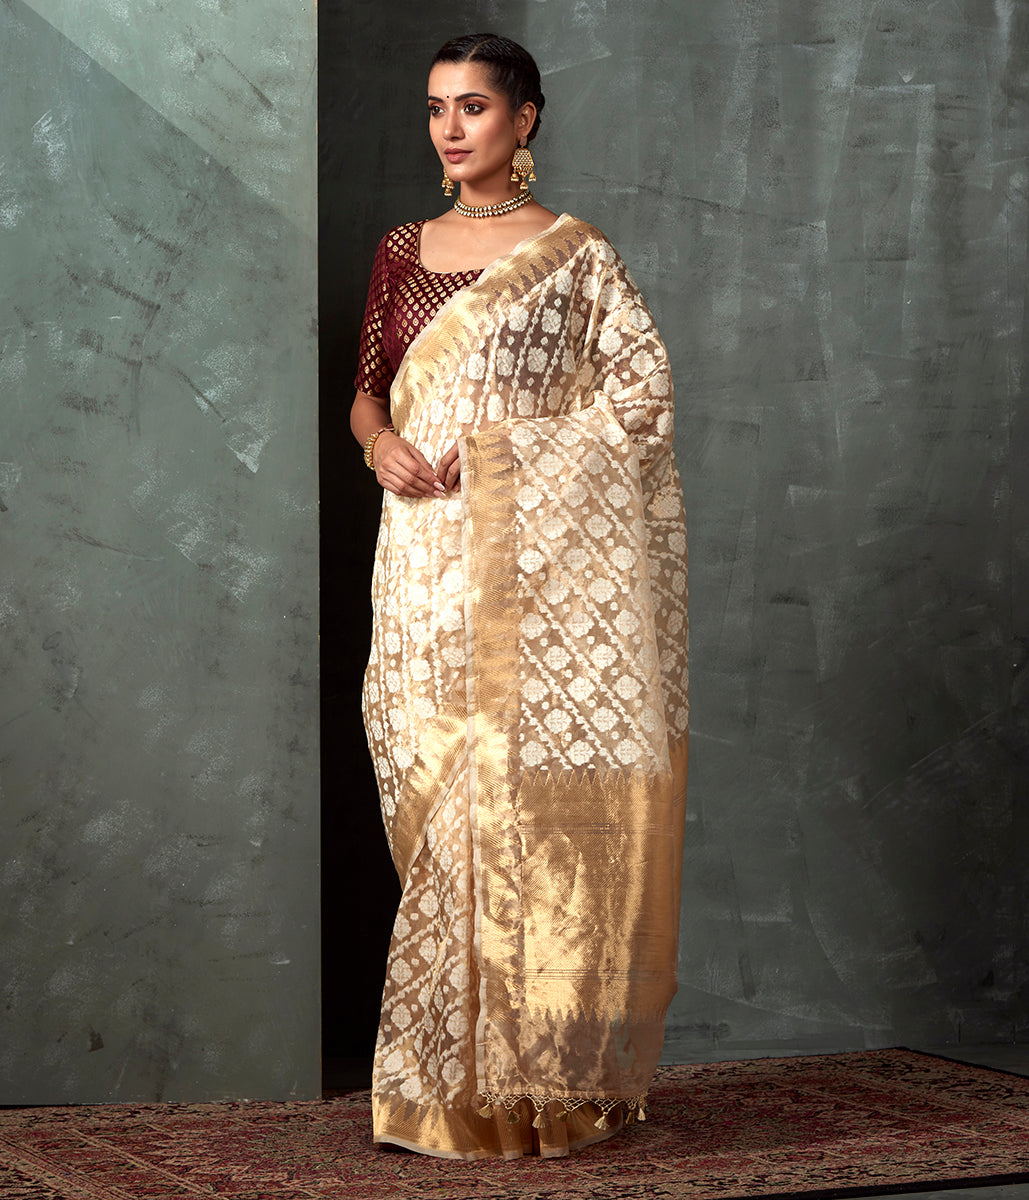 Handwoven Cream and Gold Kora Tissue Saree